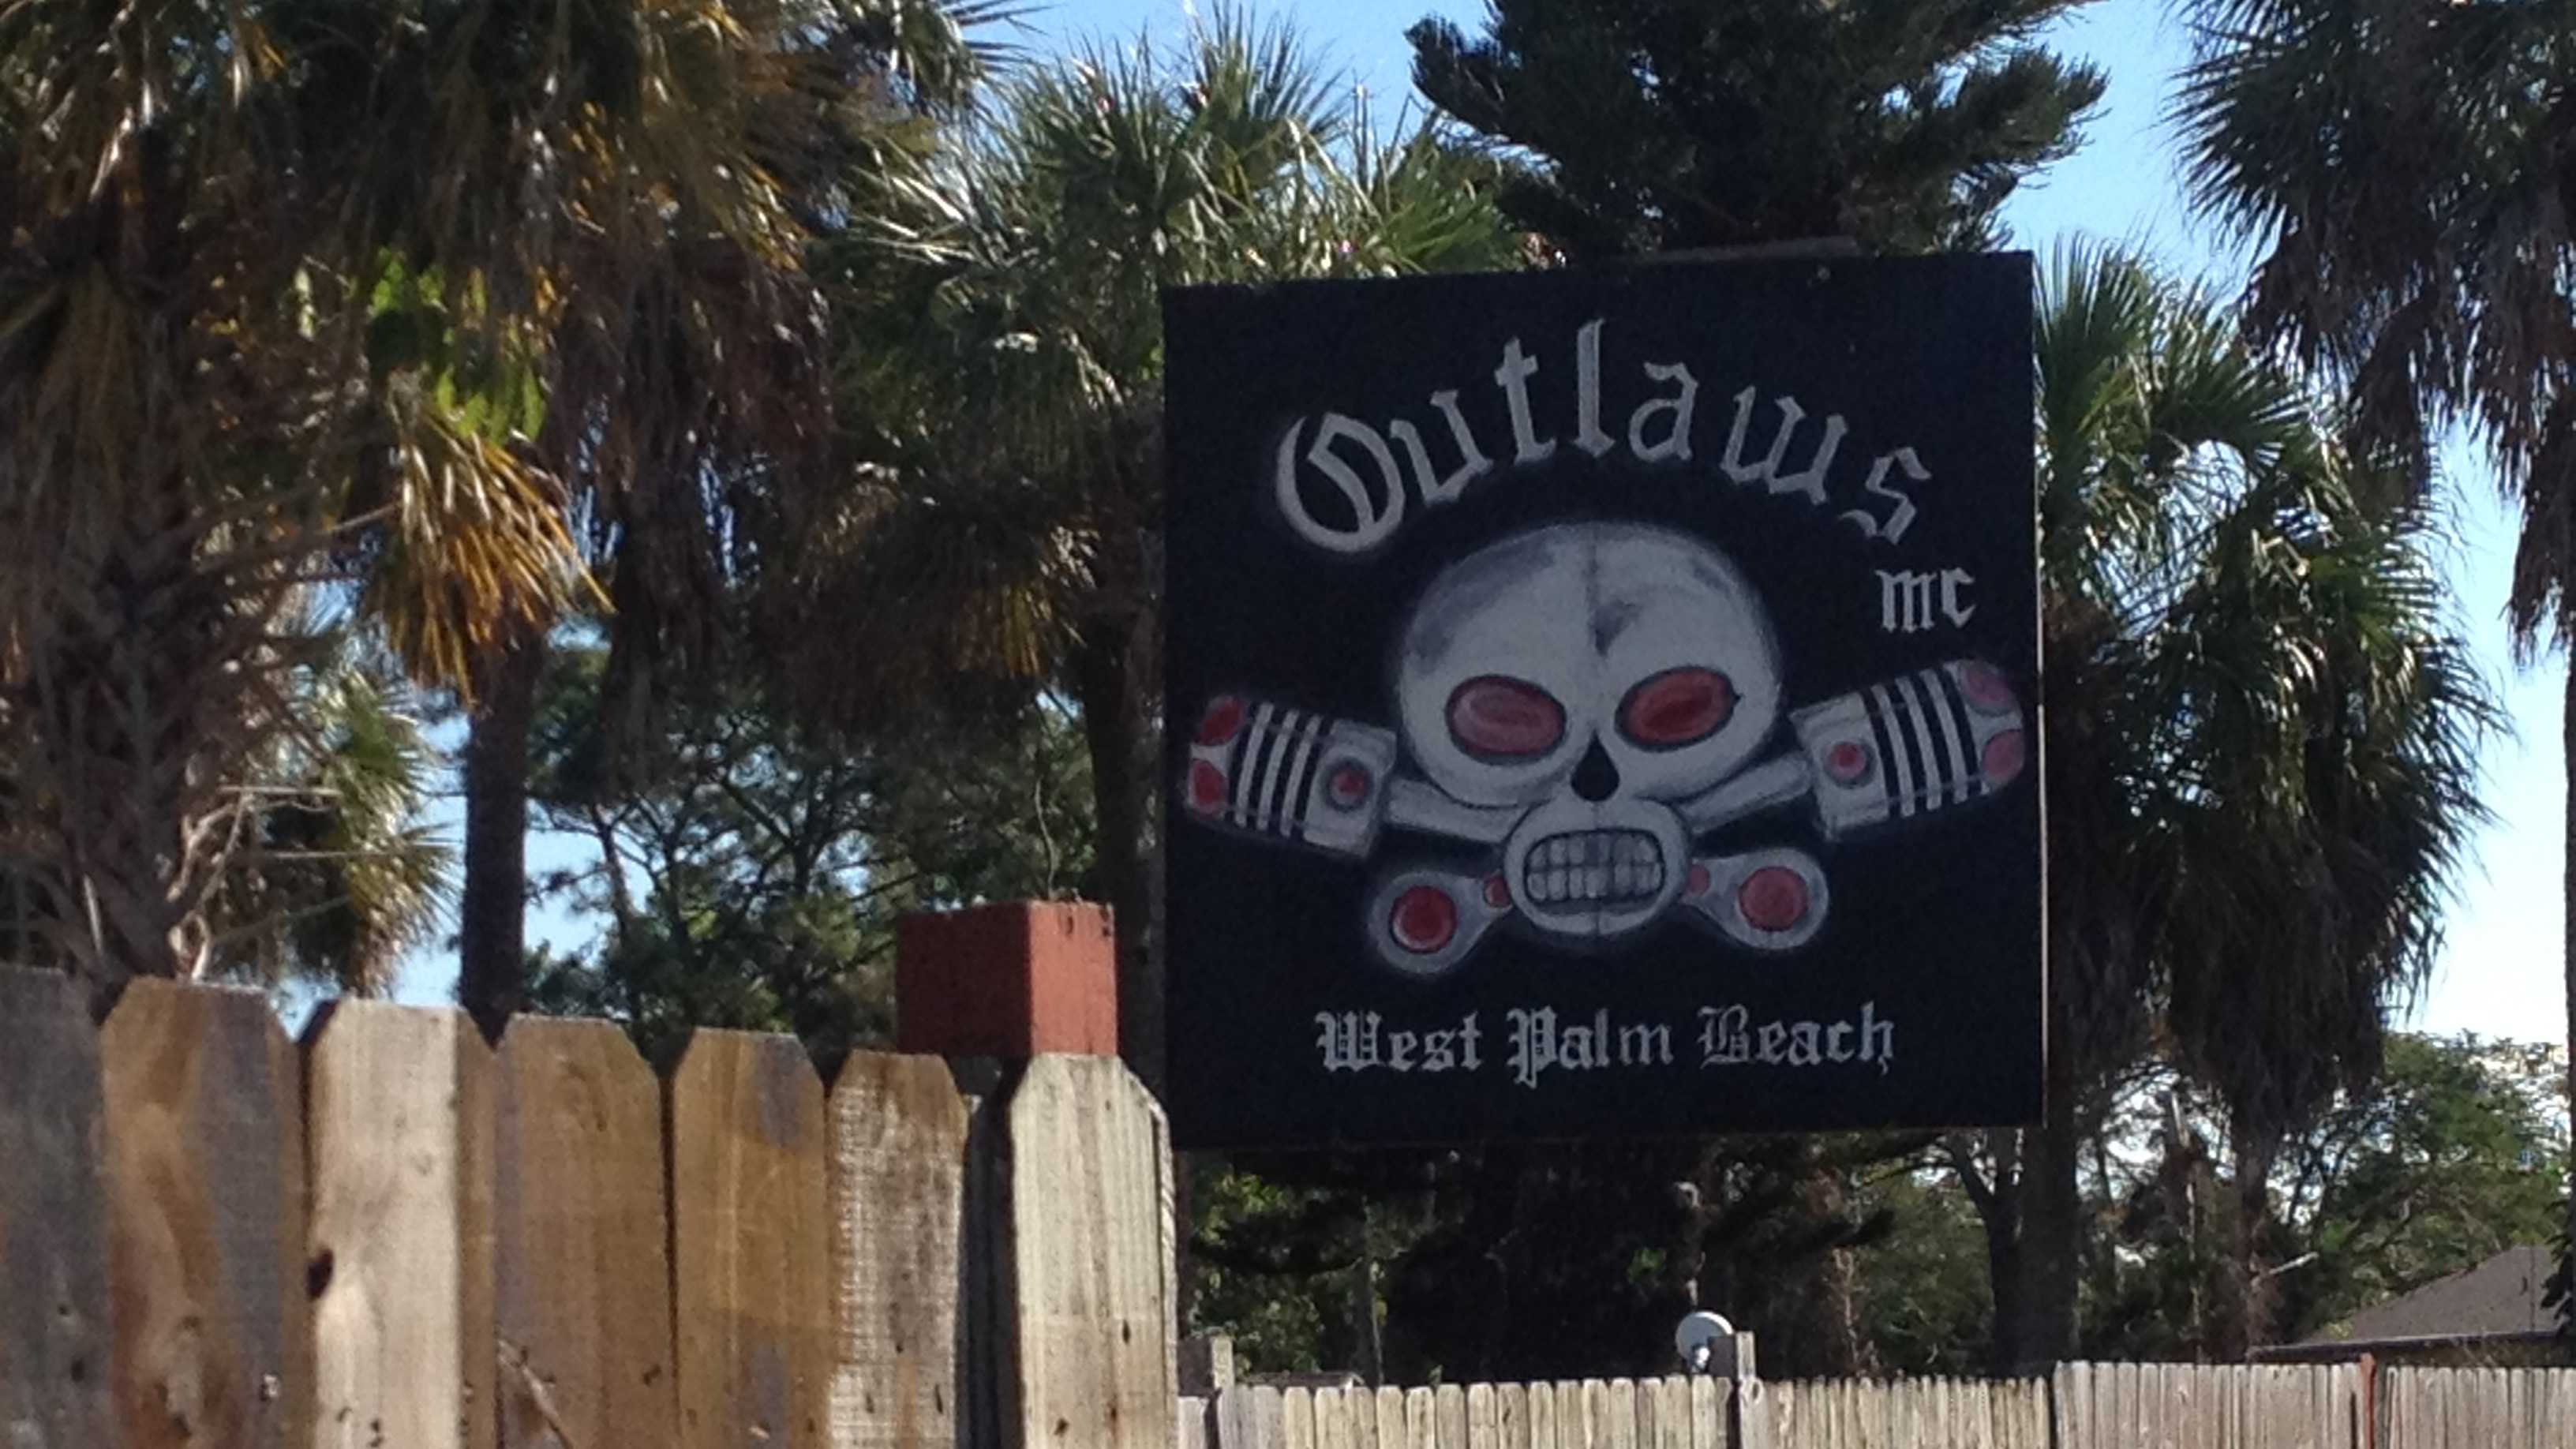 Federal agents raid the Outlaws Motorcycle Club in West Palm Beach.